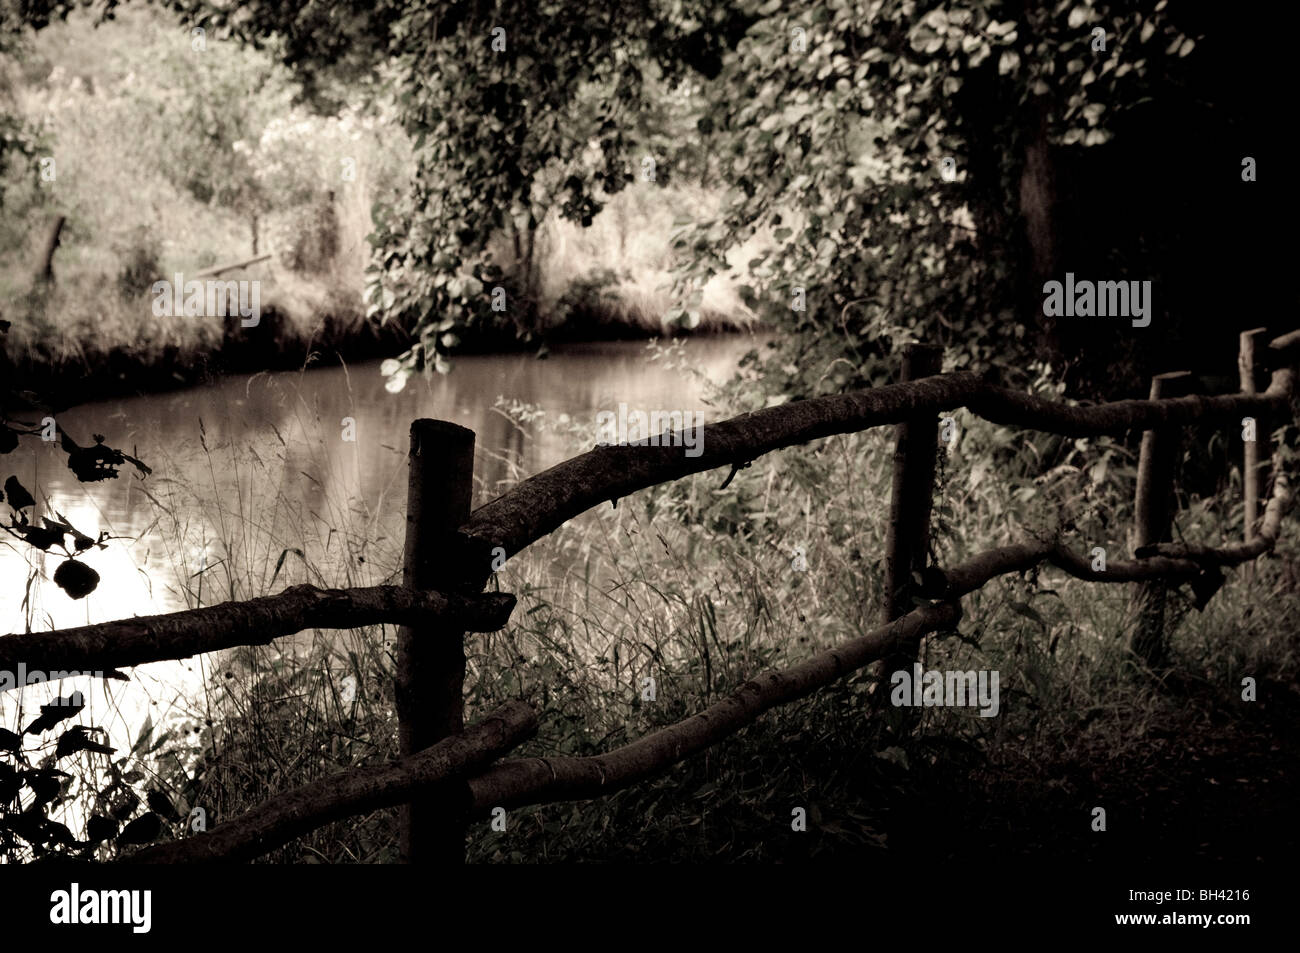 Zauberwald, Groombridge, Kent, UK Stockbild